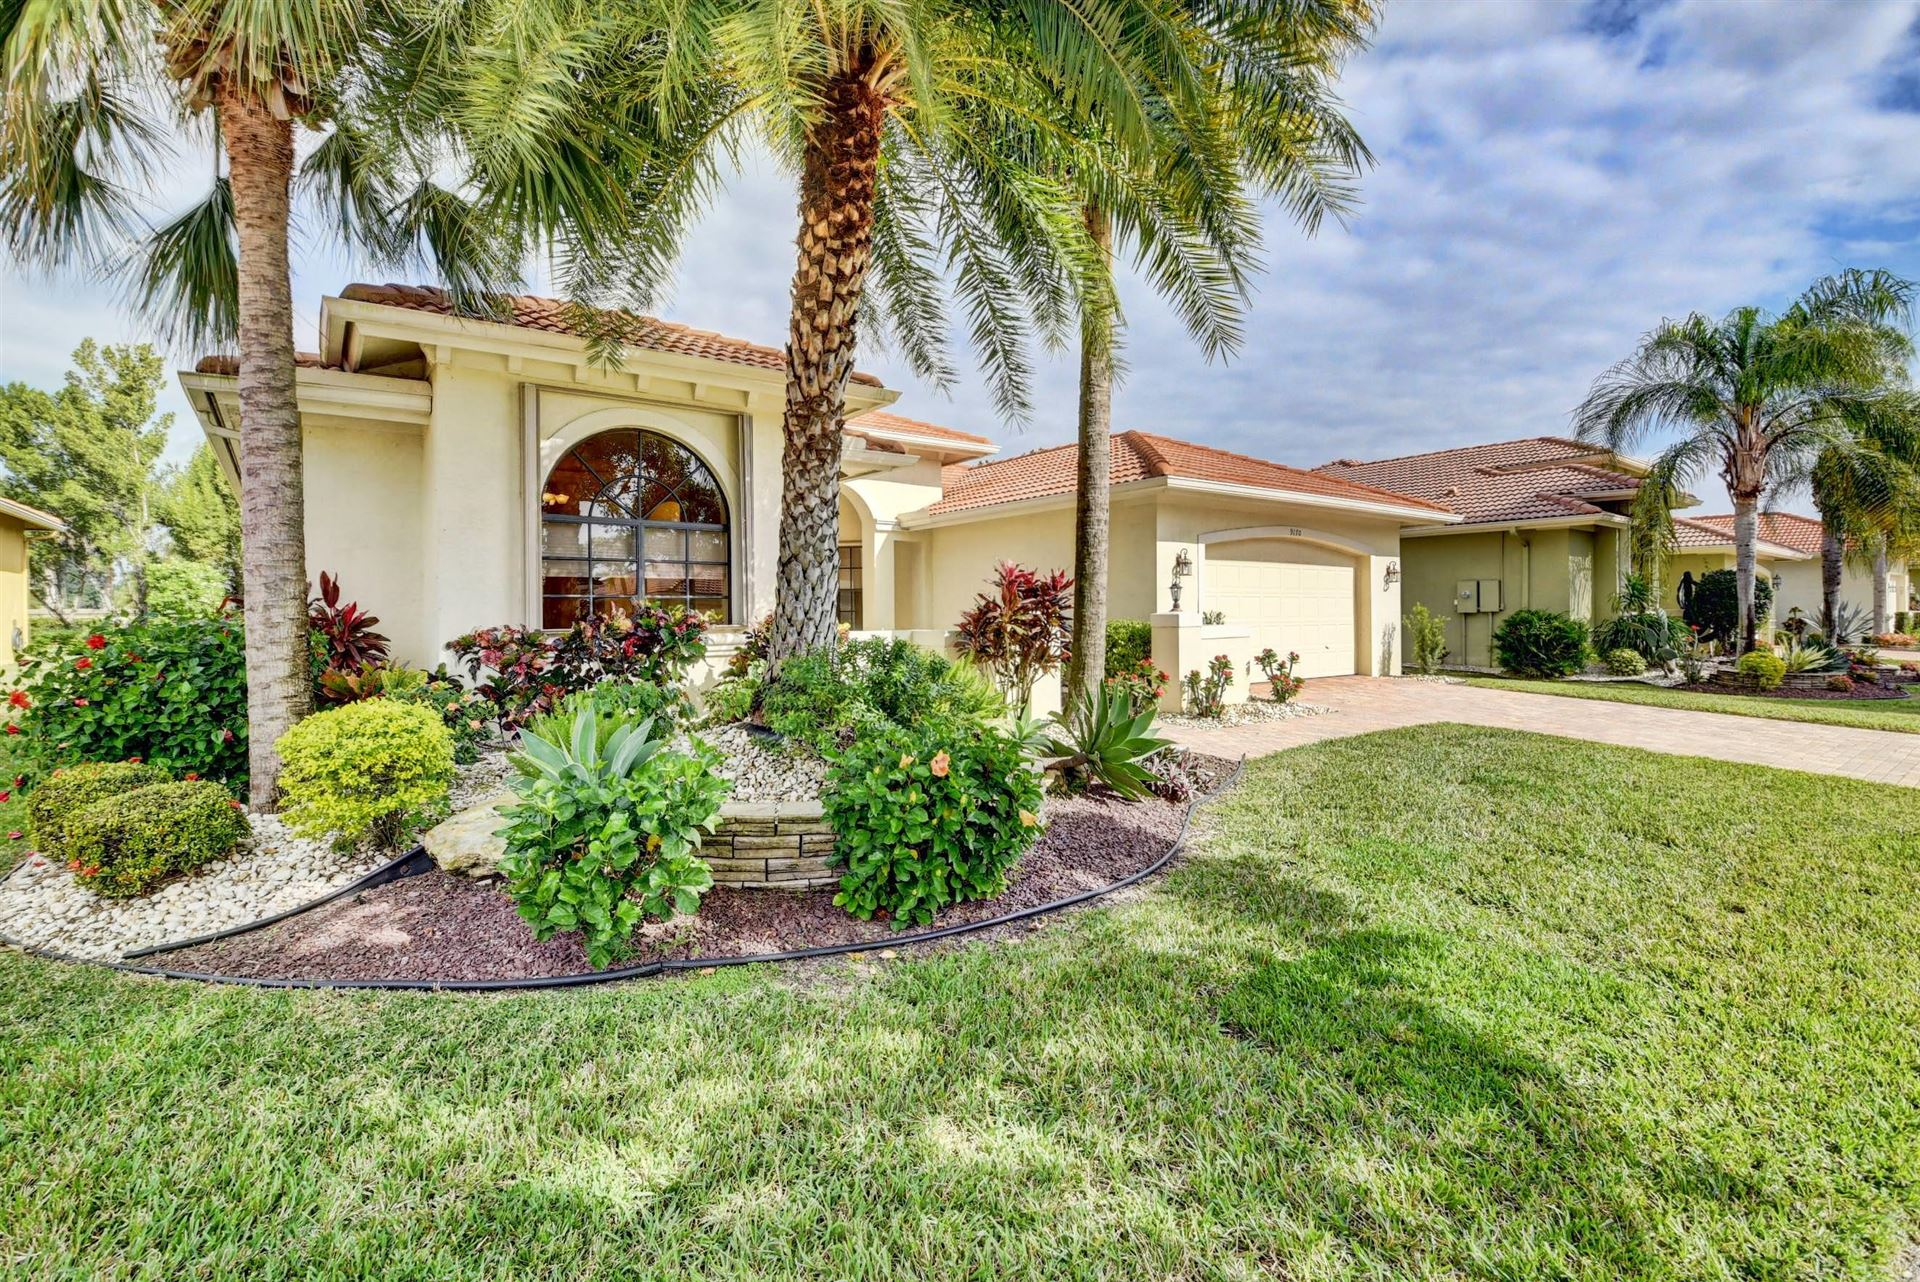 Photo of 9170 Isles Cay Drive, Delray Beach, FL 33446 (MLS # RX-10683123)